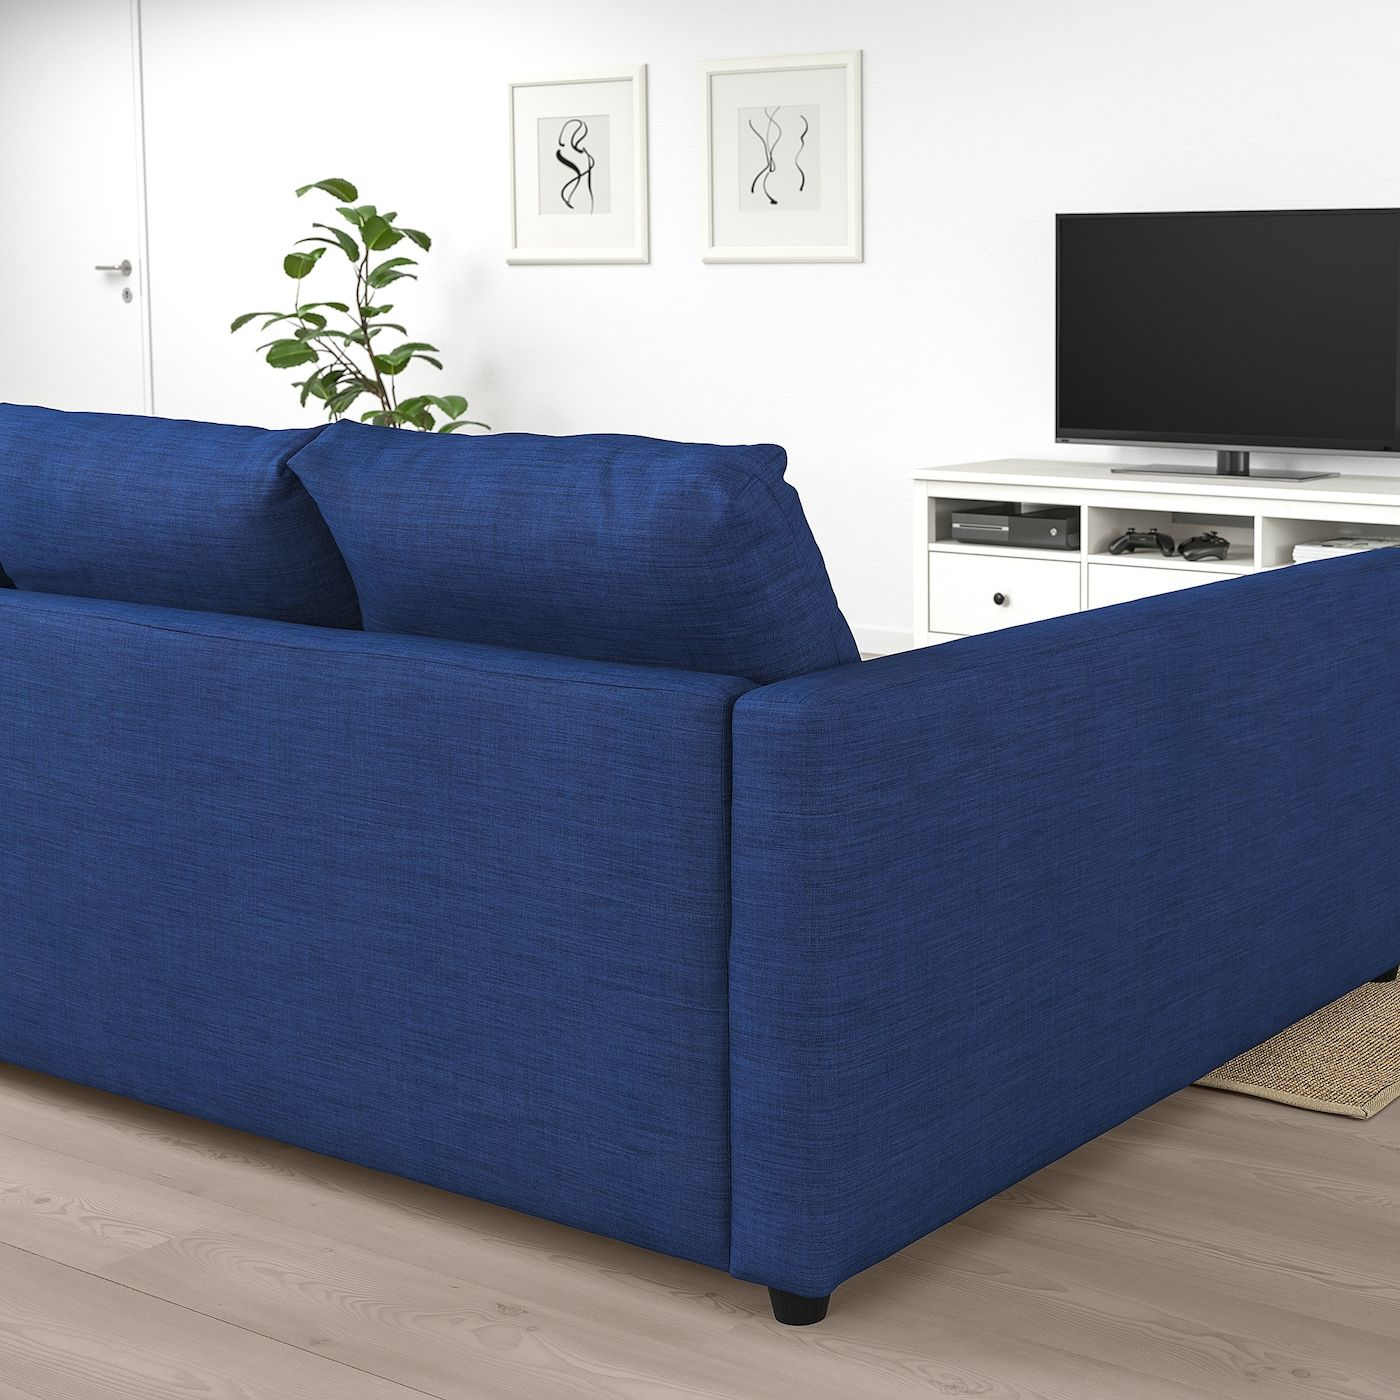 Friheten Sleeper Sectional 3 Seat W Storage Skiftebo Blue In 2020 With Images Corner Sofa Bed With Storage Corner Sofa Bed Tiny Living Room Apartment